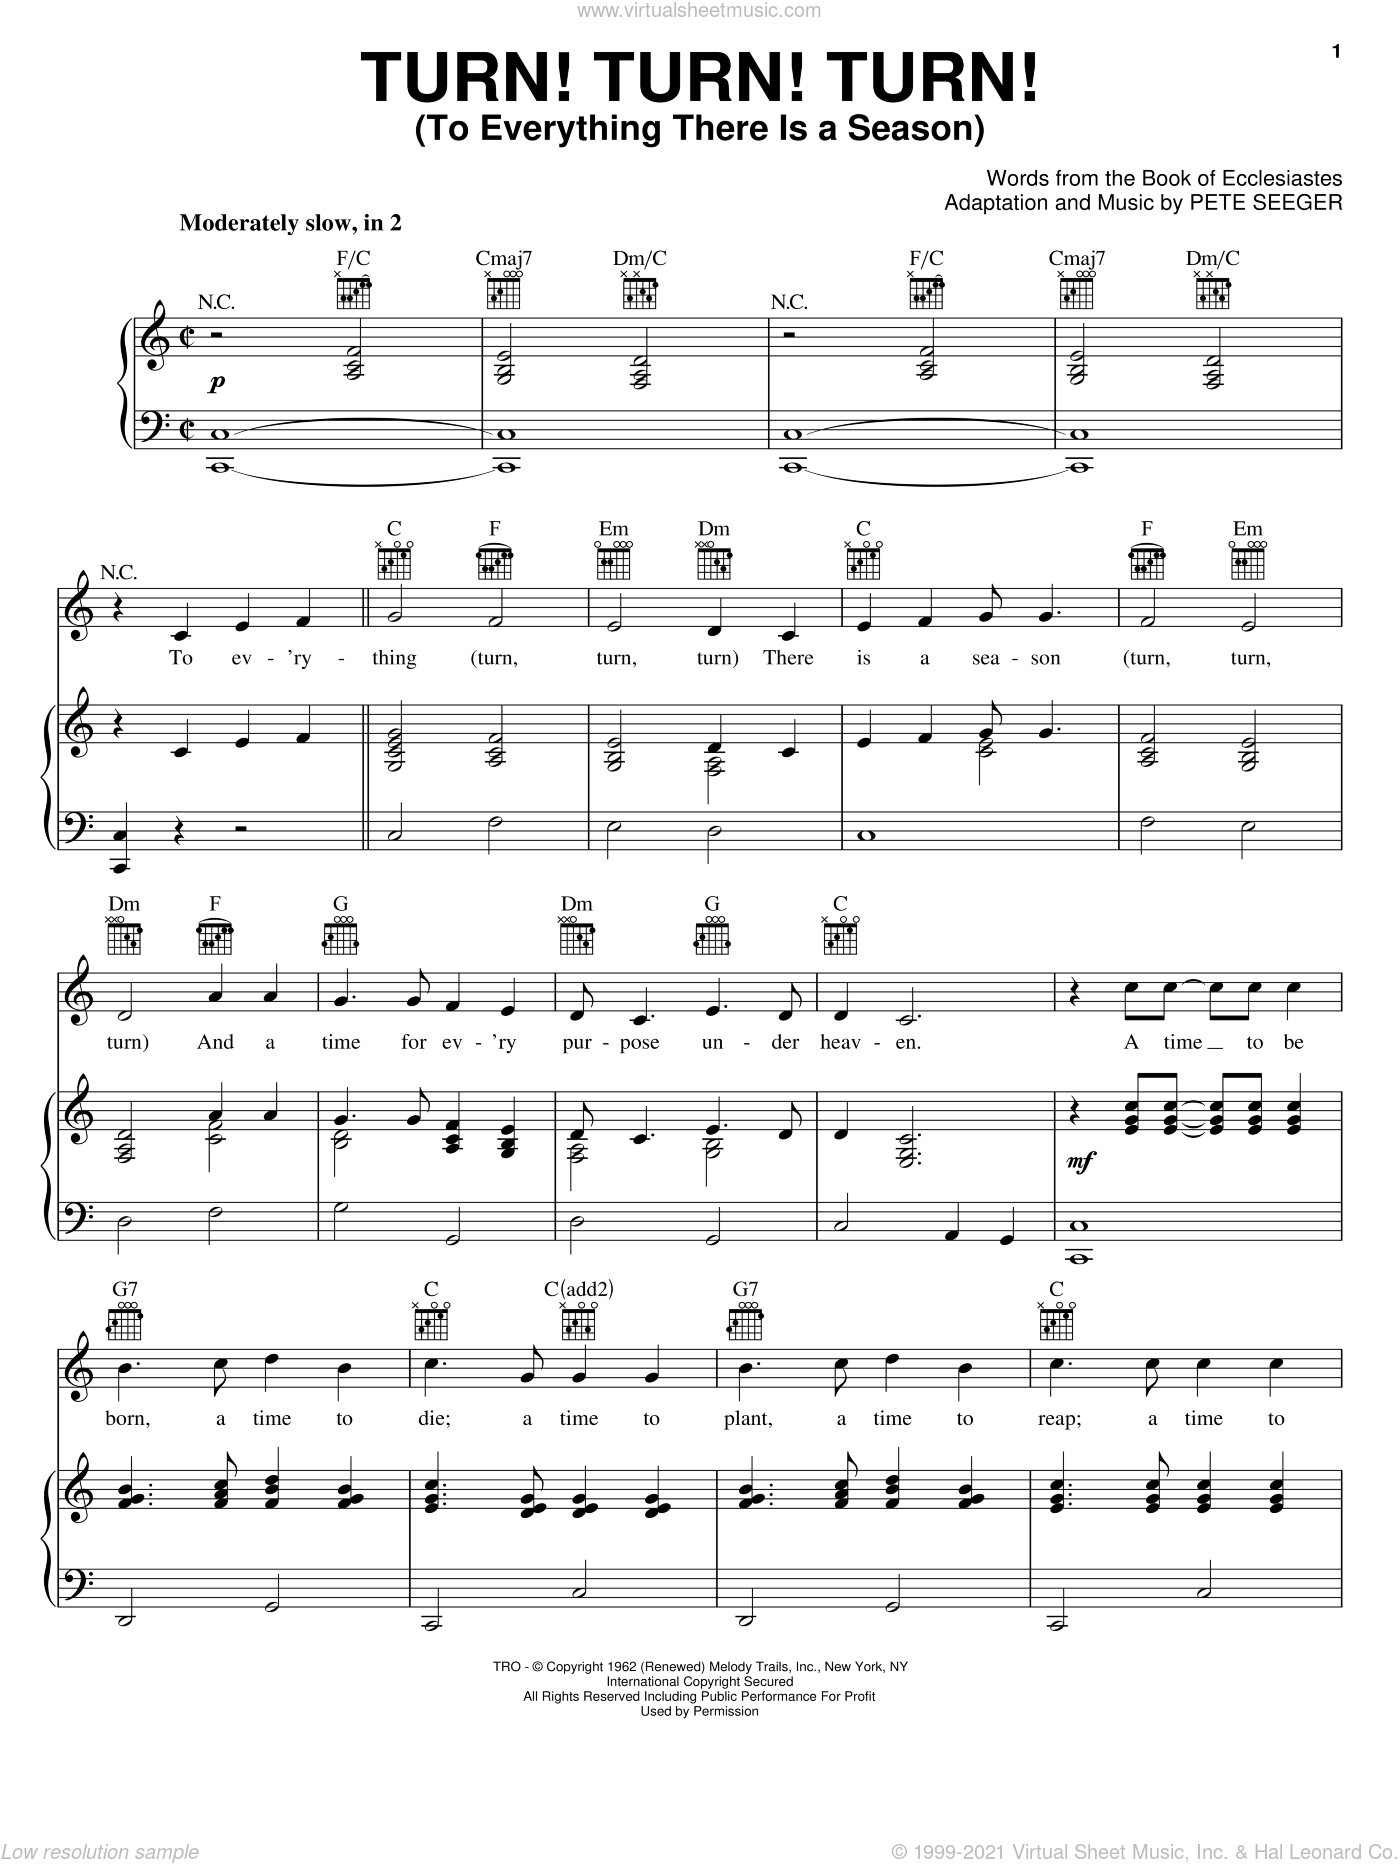 Turn! Turn! Turn! (To Everything There Is A Season) sheet music for voice, piano or guitar by Pete Seeger